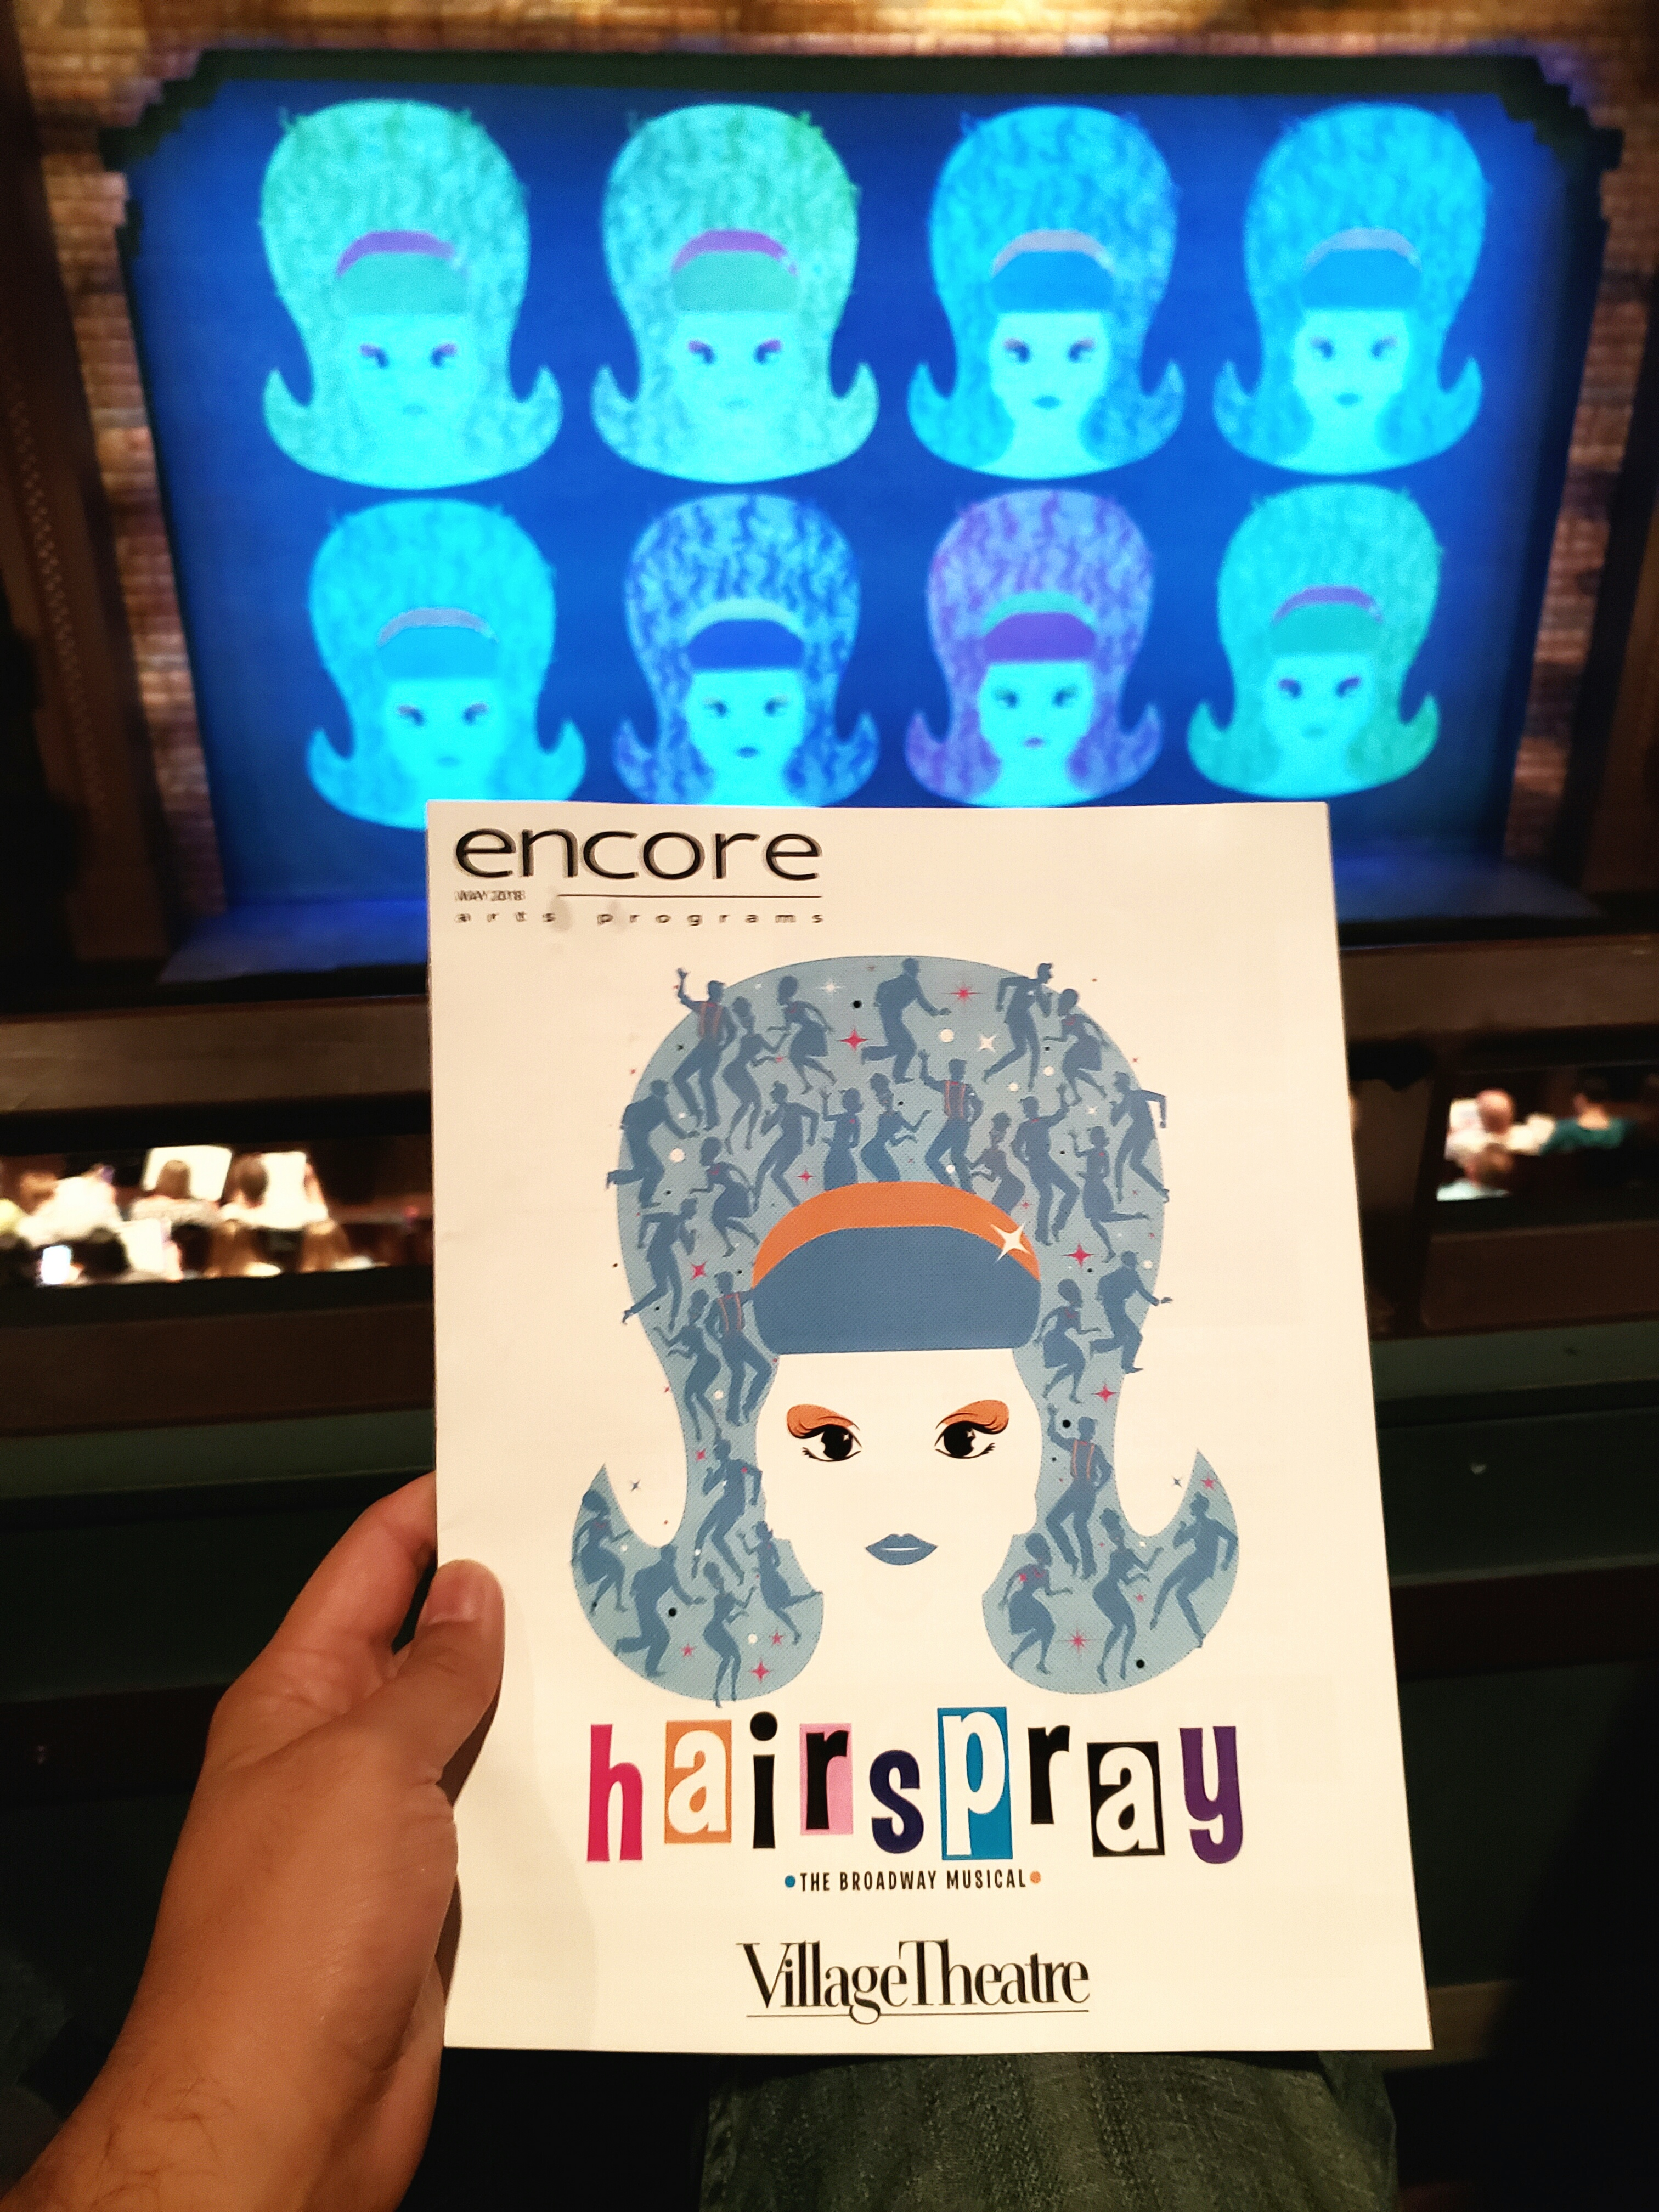 Best Hairspray version I've seen so far (out of 5). Will probably see again. It was interesting to hear Tracy with a more full-bodied (no pun intended) non-squeaky voice. Wish they could add the movie's songs